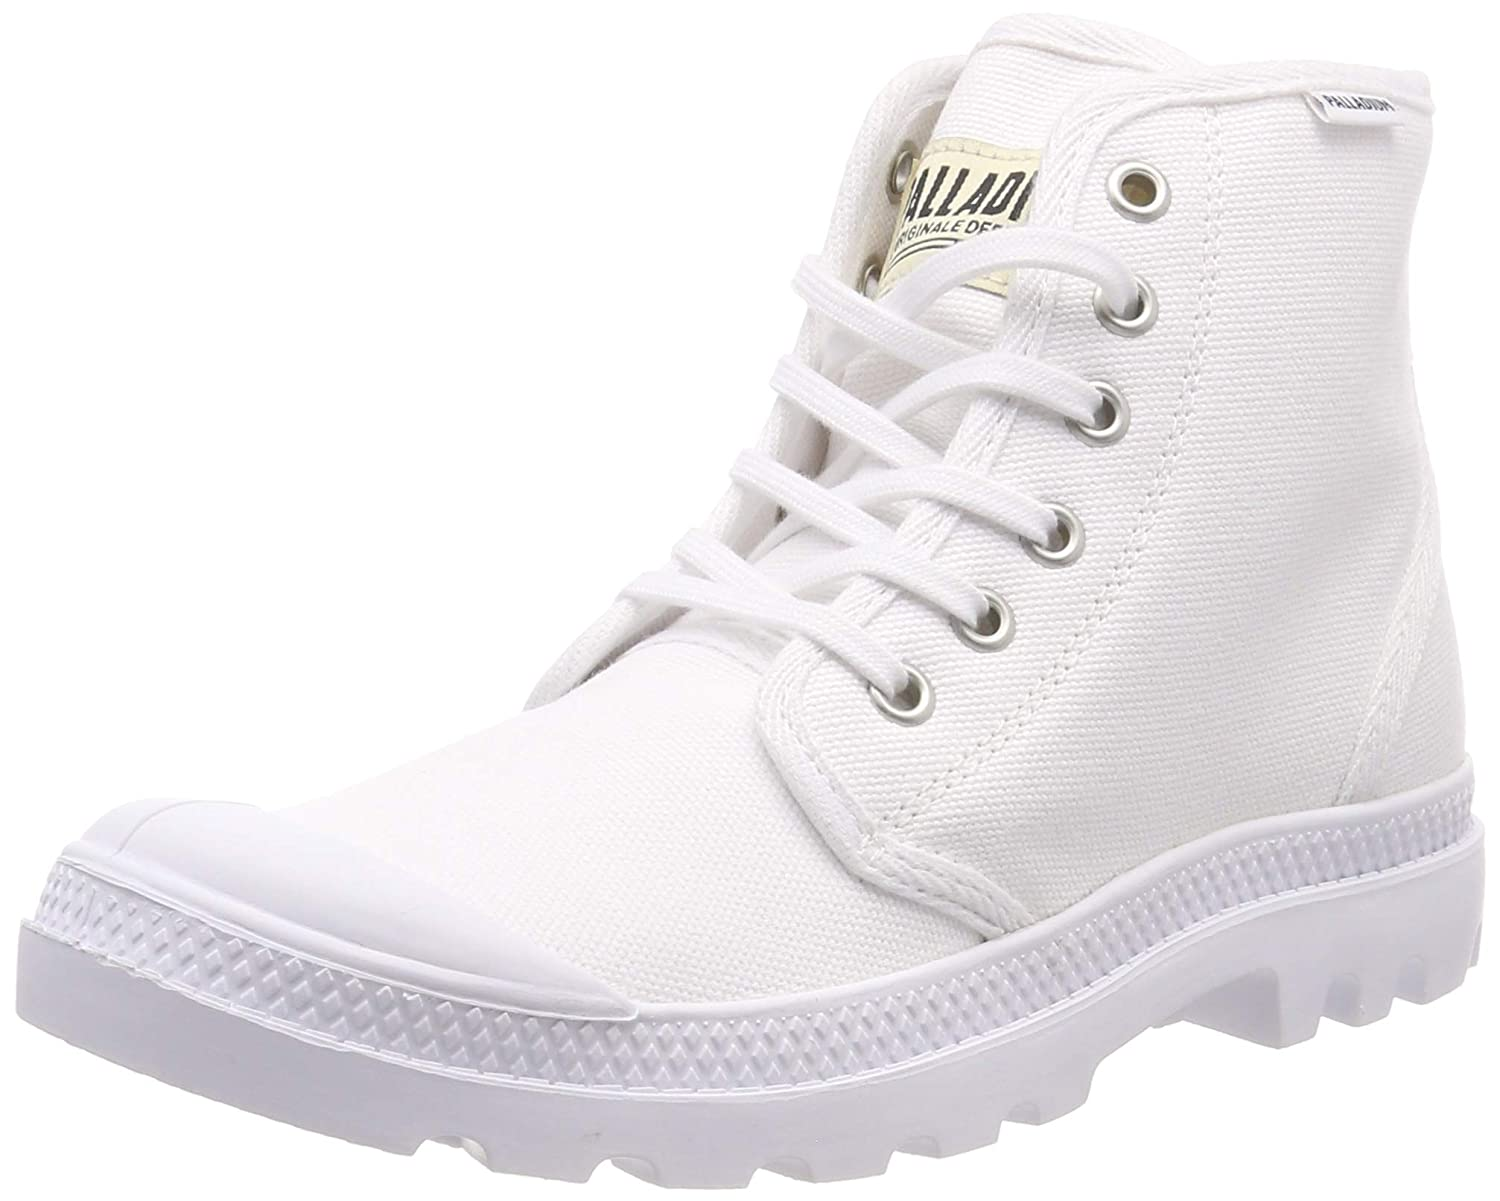 Palladium Pampa Hi Hi Mixte Originale, Bottes et Bottines Souples Mixte Blanc Adulte Blanc (White/White 924) 1cb4a14 - shopssong.space